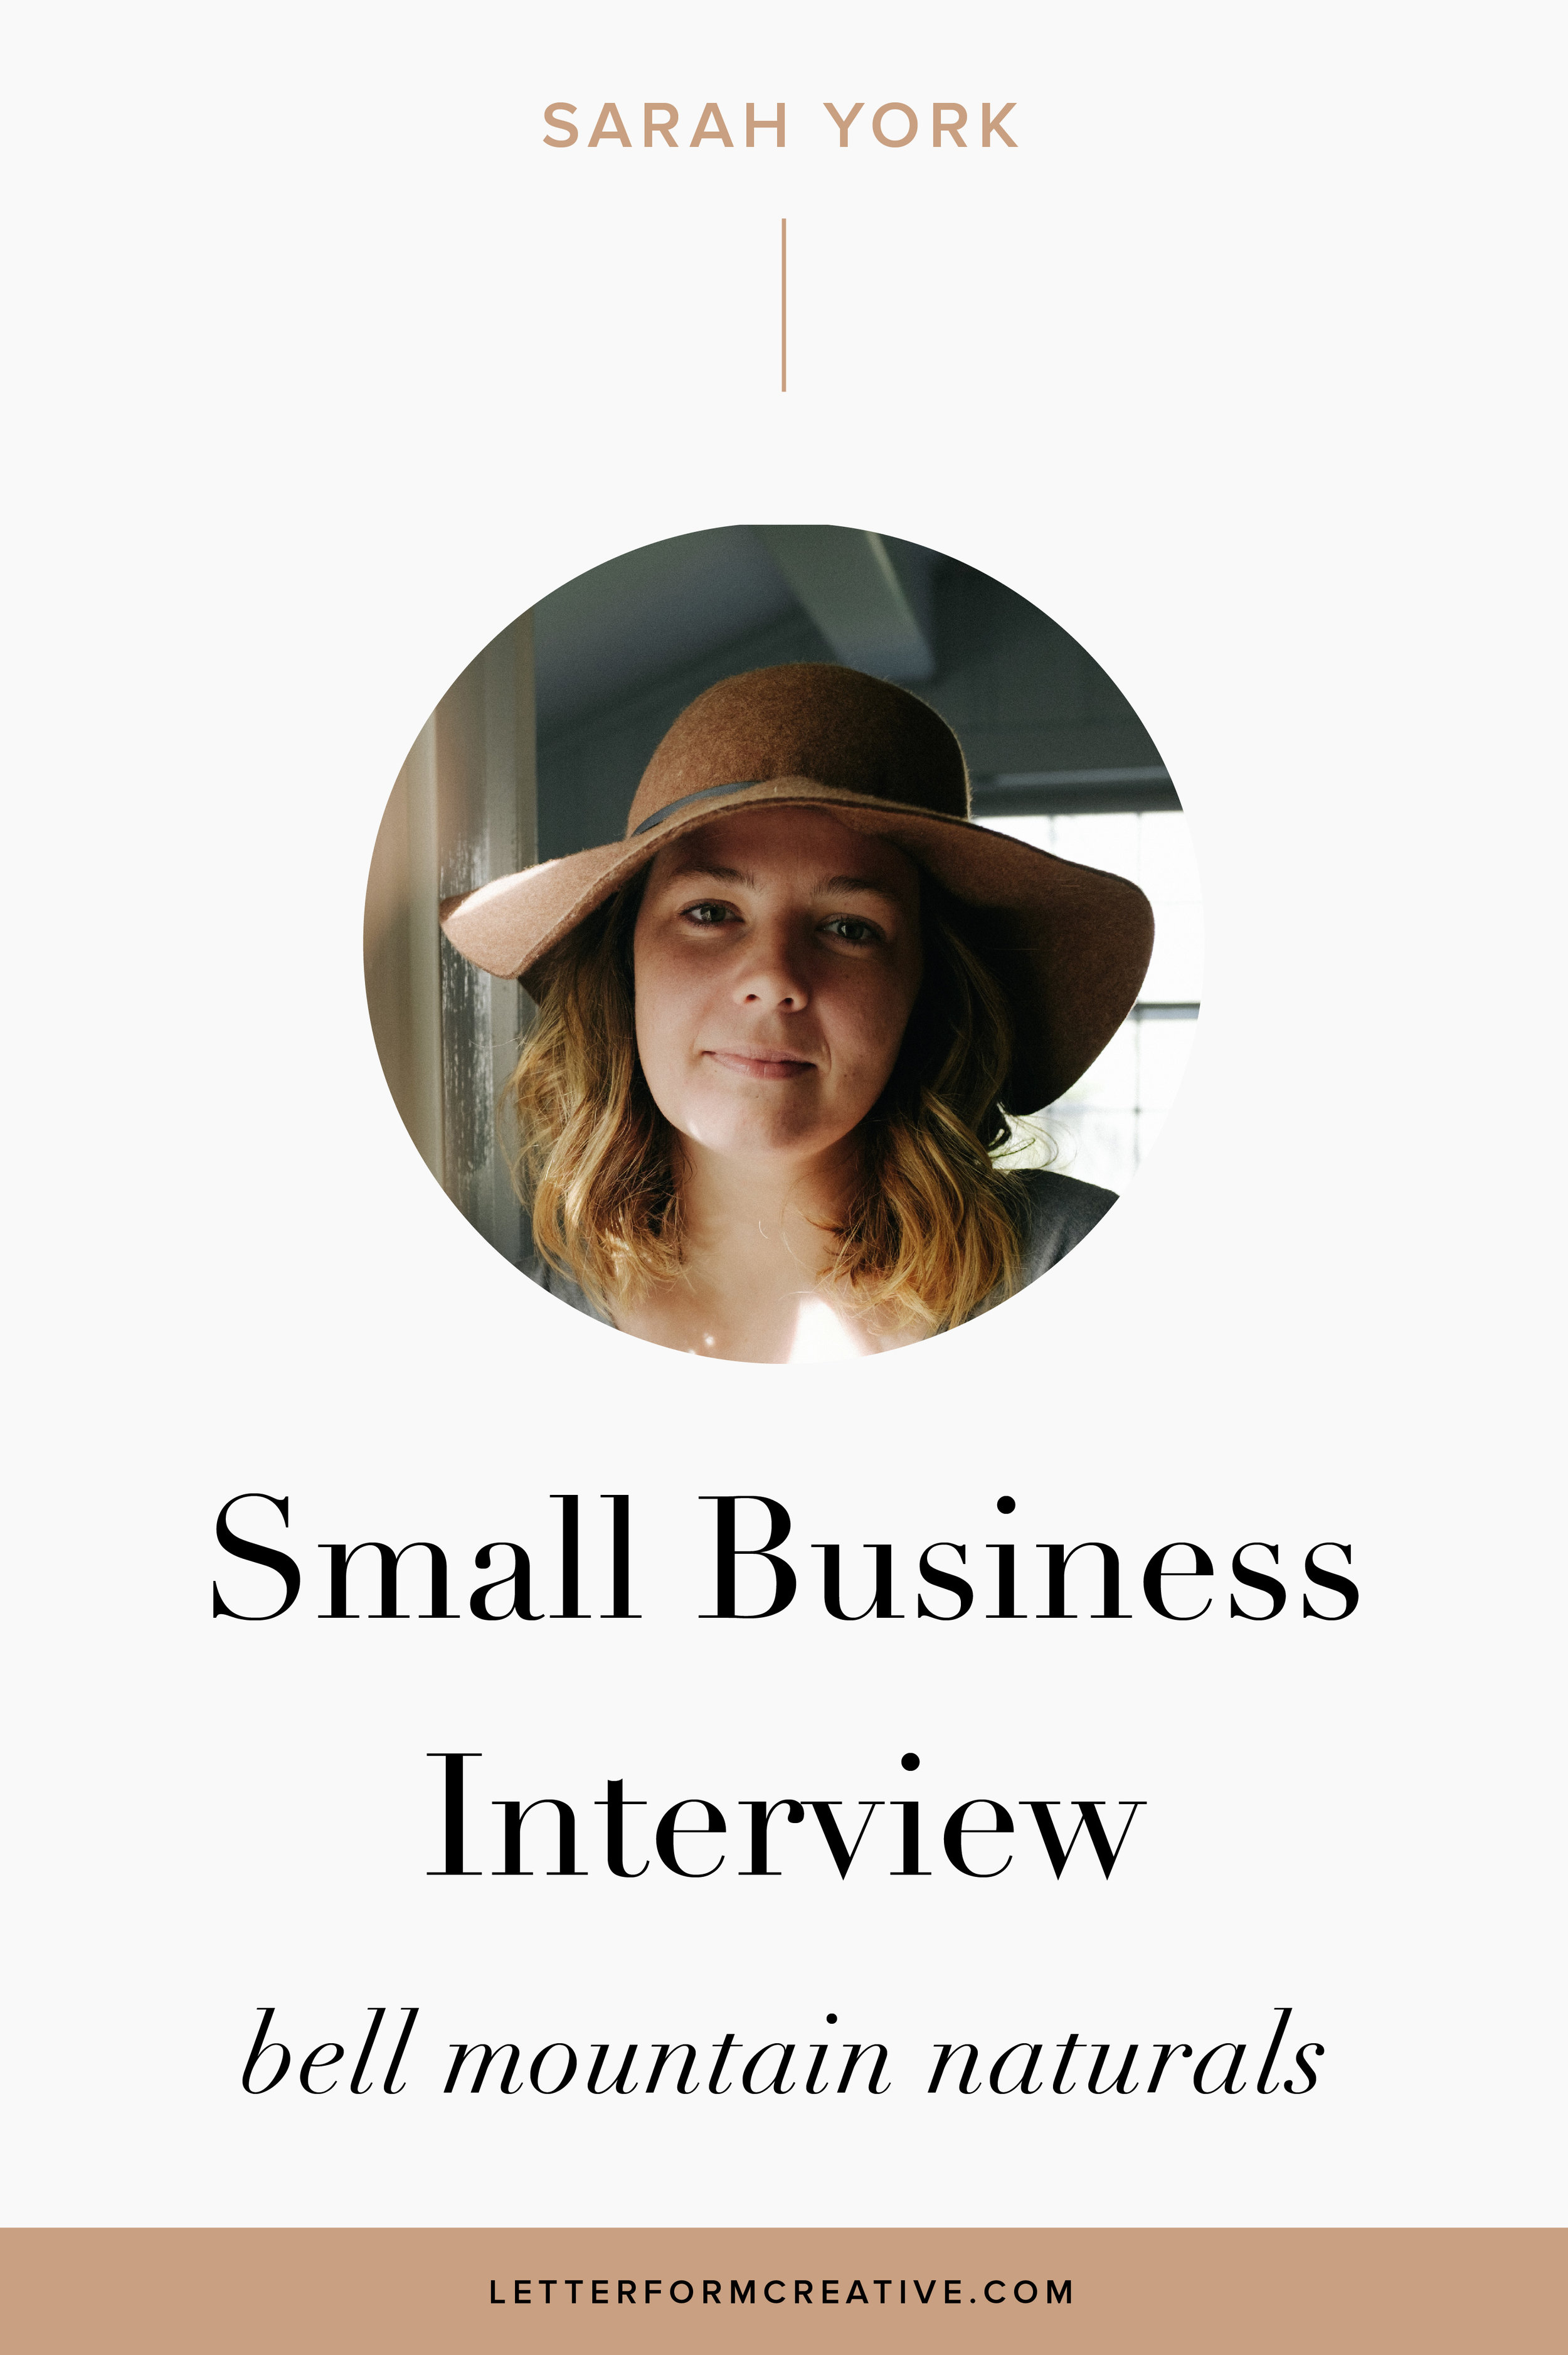 """You HAVE to love what you do. That passion carries you through all the challenges of starting/running a business!"" This is one of many great quotes in my interview with Sarah York, owner of Bell Mountain Naturals. If you're a small business owner be sure to check out this article! Sarah talks about the ups and downs of owning an online business from bookeeping, to brand marketing, to social media strategy. learn about her experience as an entrepreneur and gain some inspiration,  ideas, and tips for your own start up. Click through to take advantage of the free wisdom that Sarah has shared!"